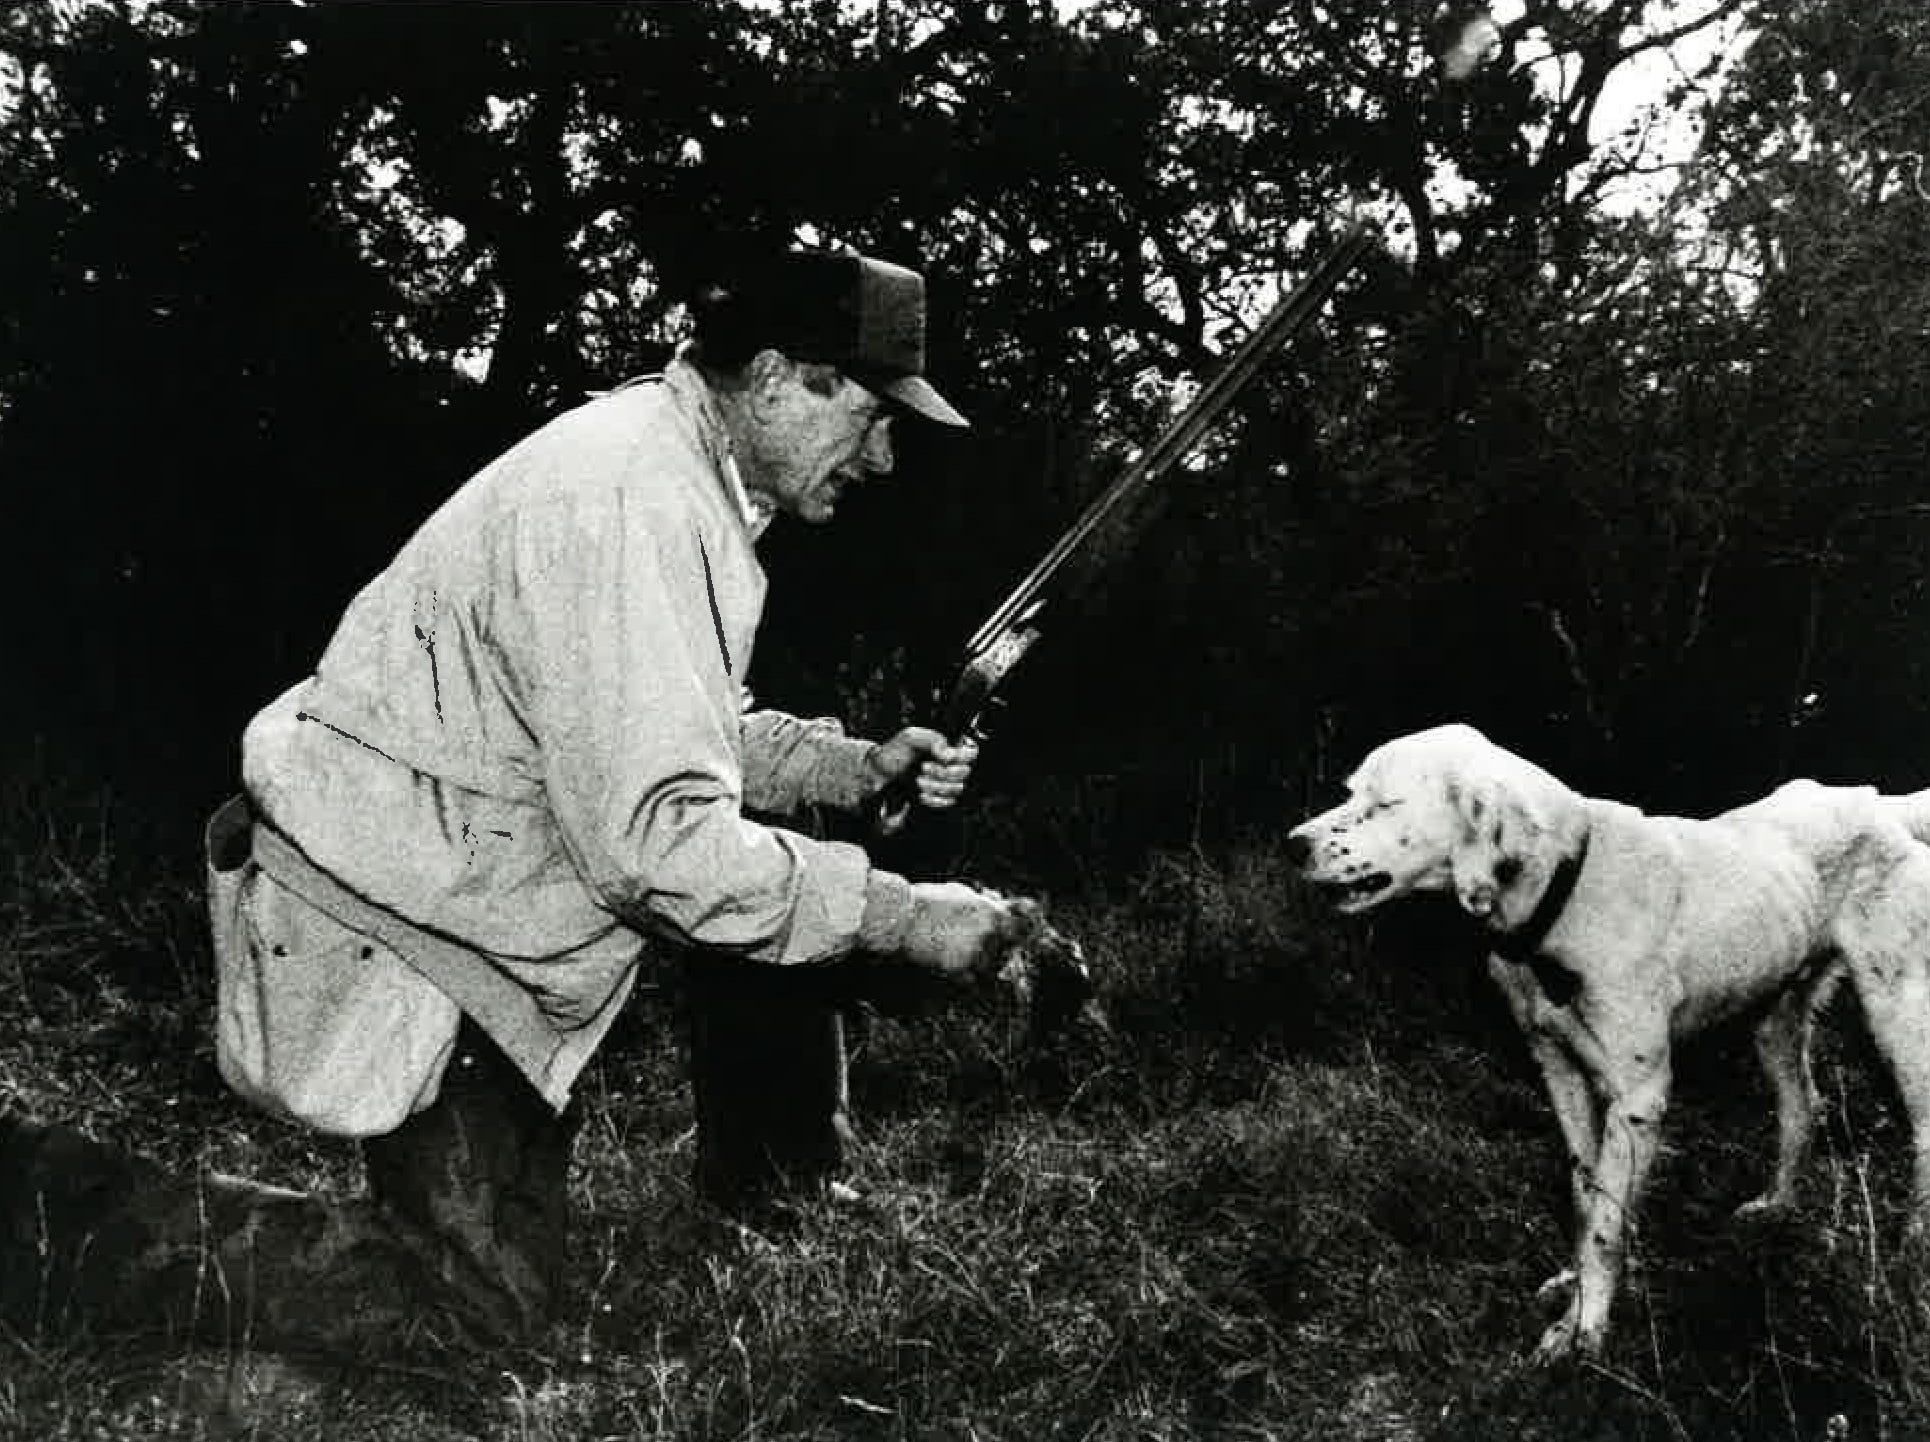 George H.W. Bush during a hunting trip near Beeville in 1991. Photo courtesy Bill Weeks.